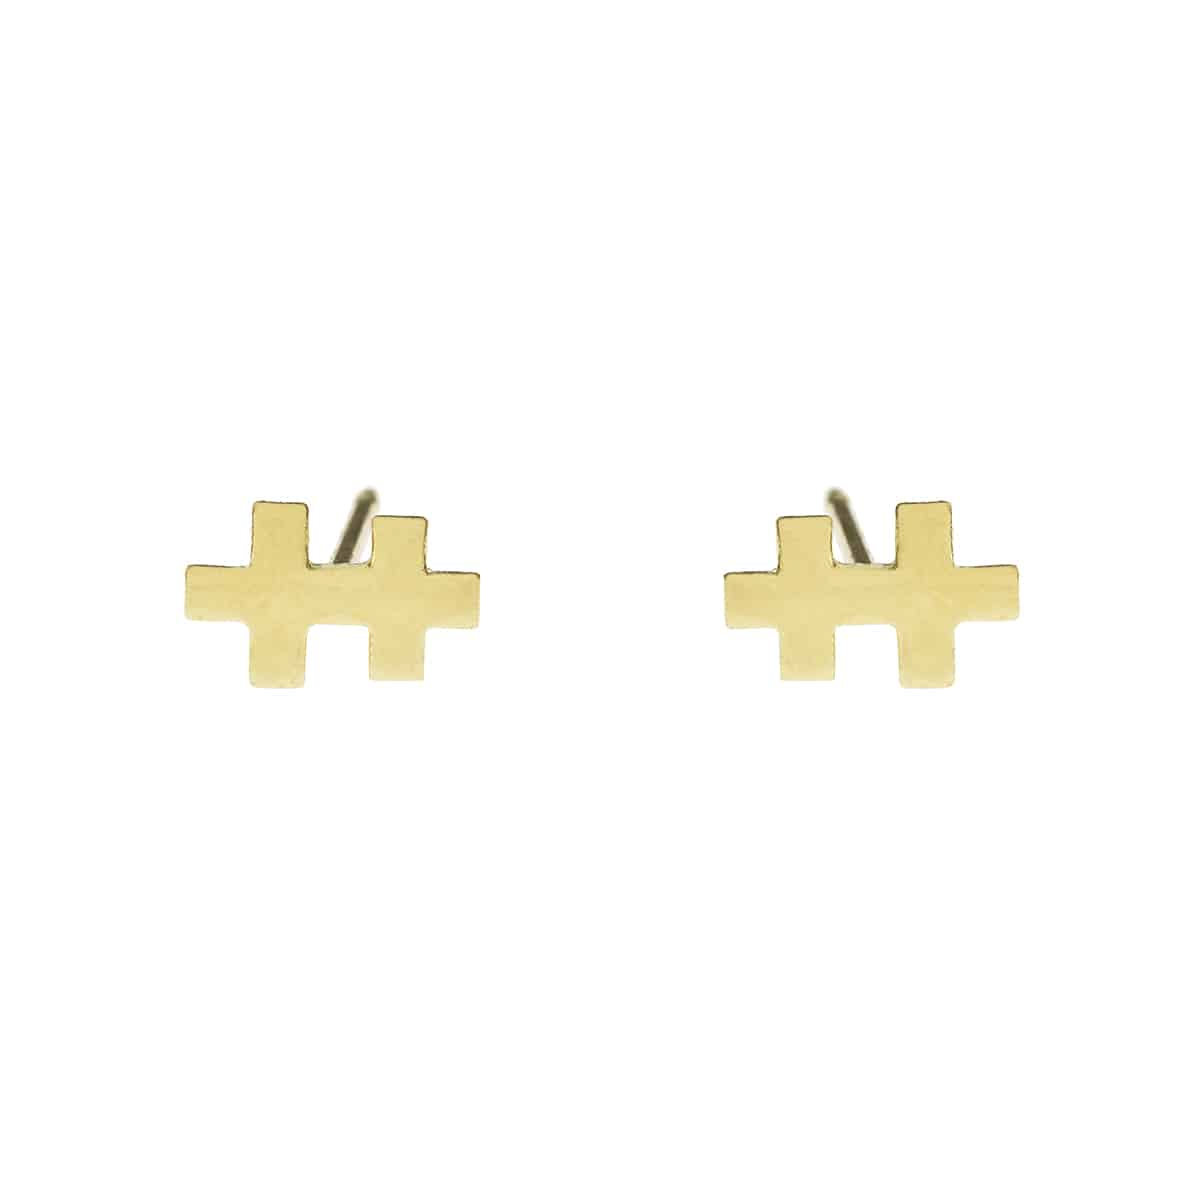 golden earrings handmade mini T woman fashion jewellery coralie de seynes l'erudite concept store